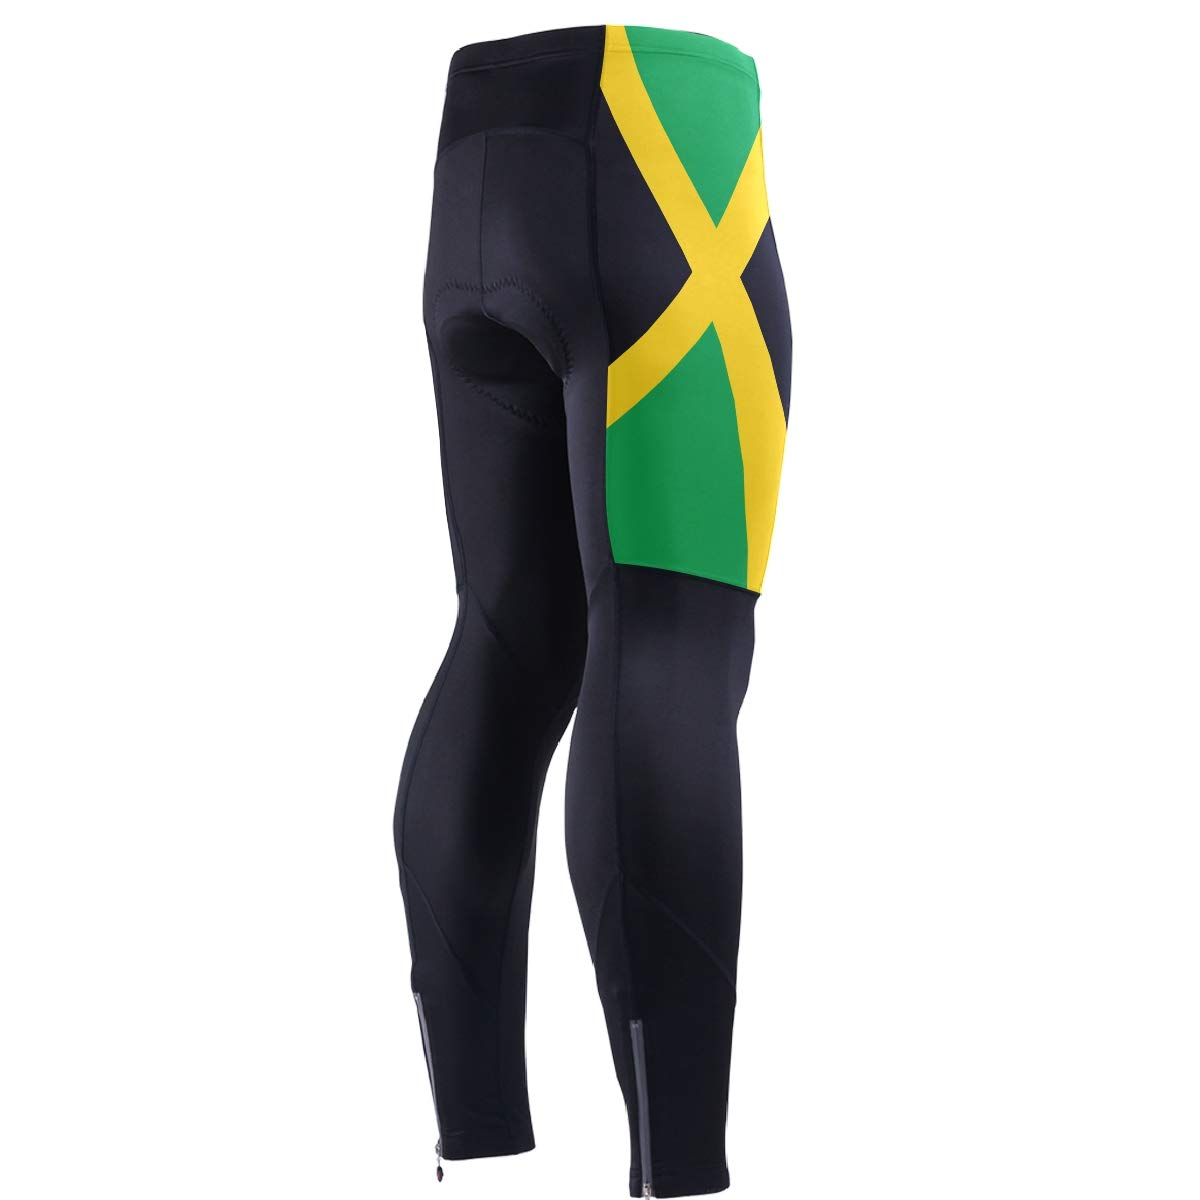 CHINEIN Men's Cycling Jersey Long Sleeve with 3 Rear Pockets Pants Jamaica Flag by CHINEIN